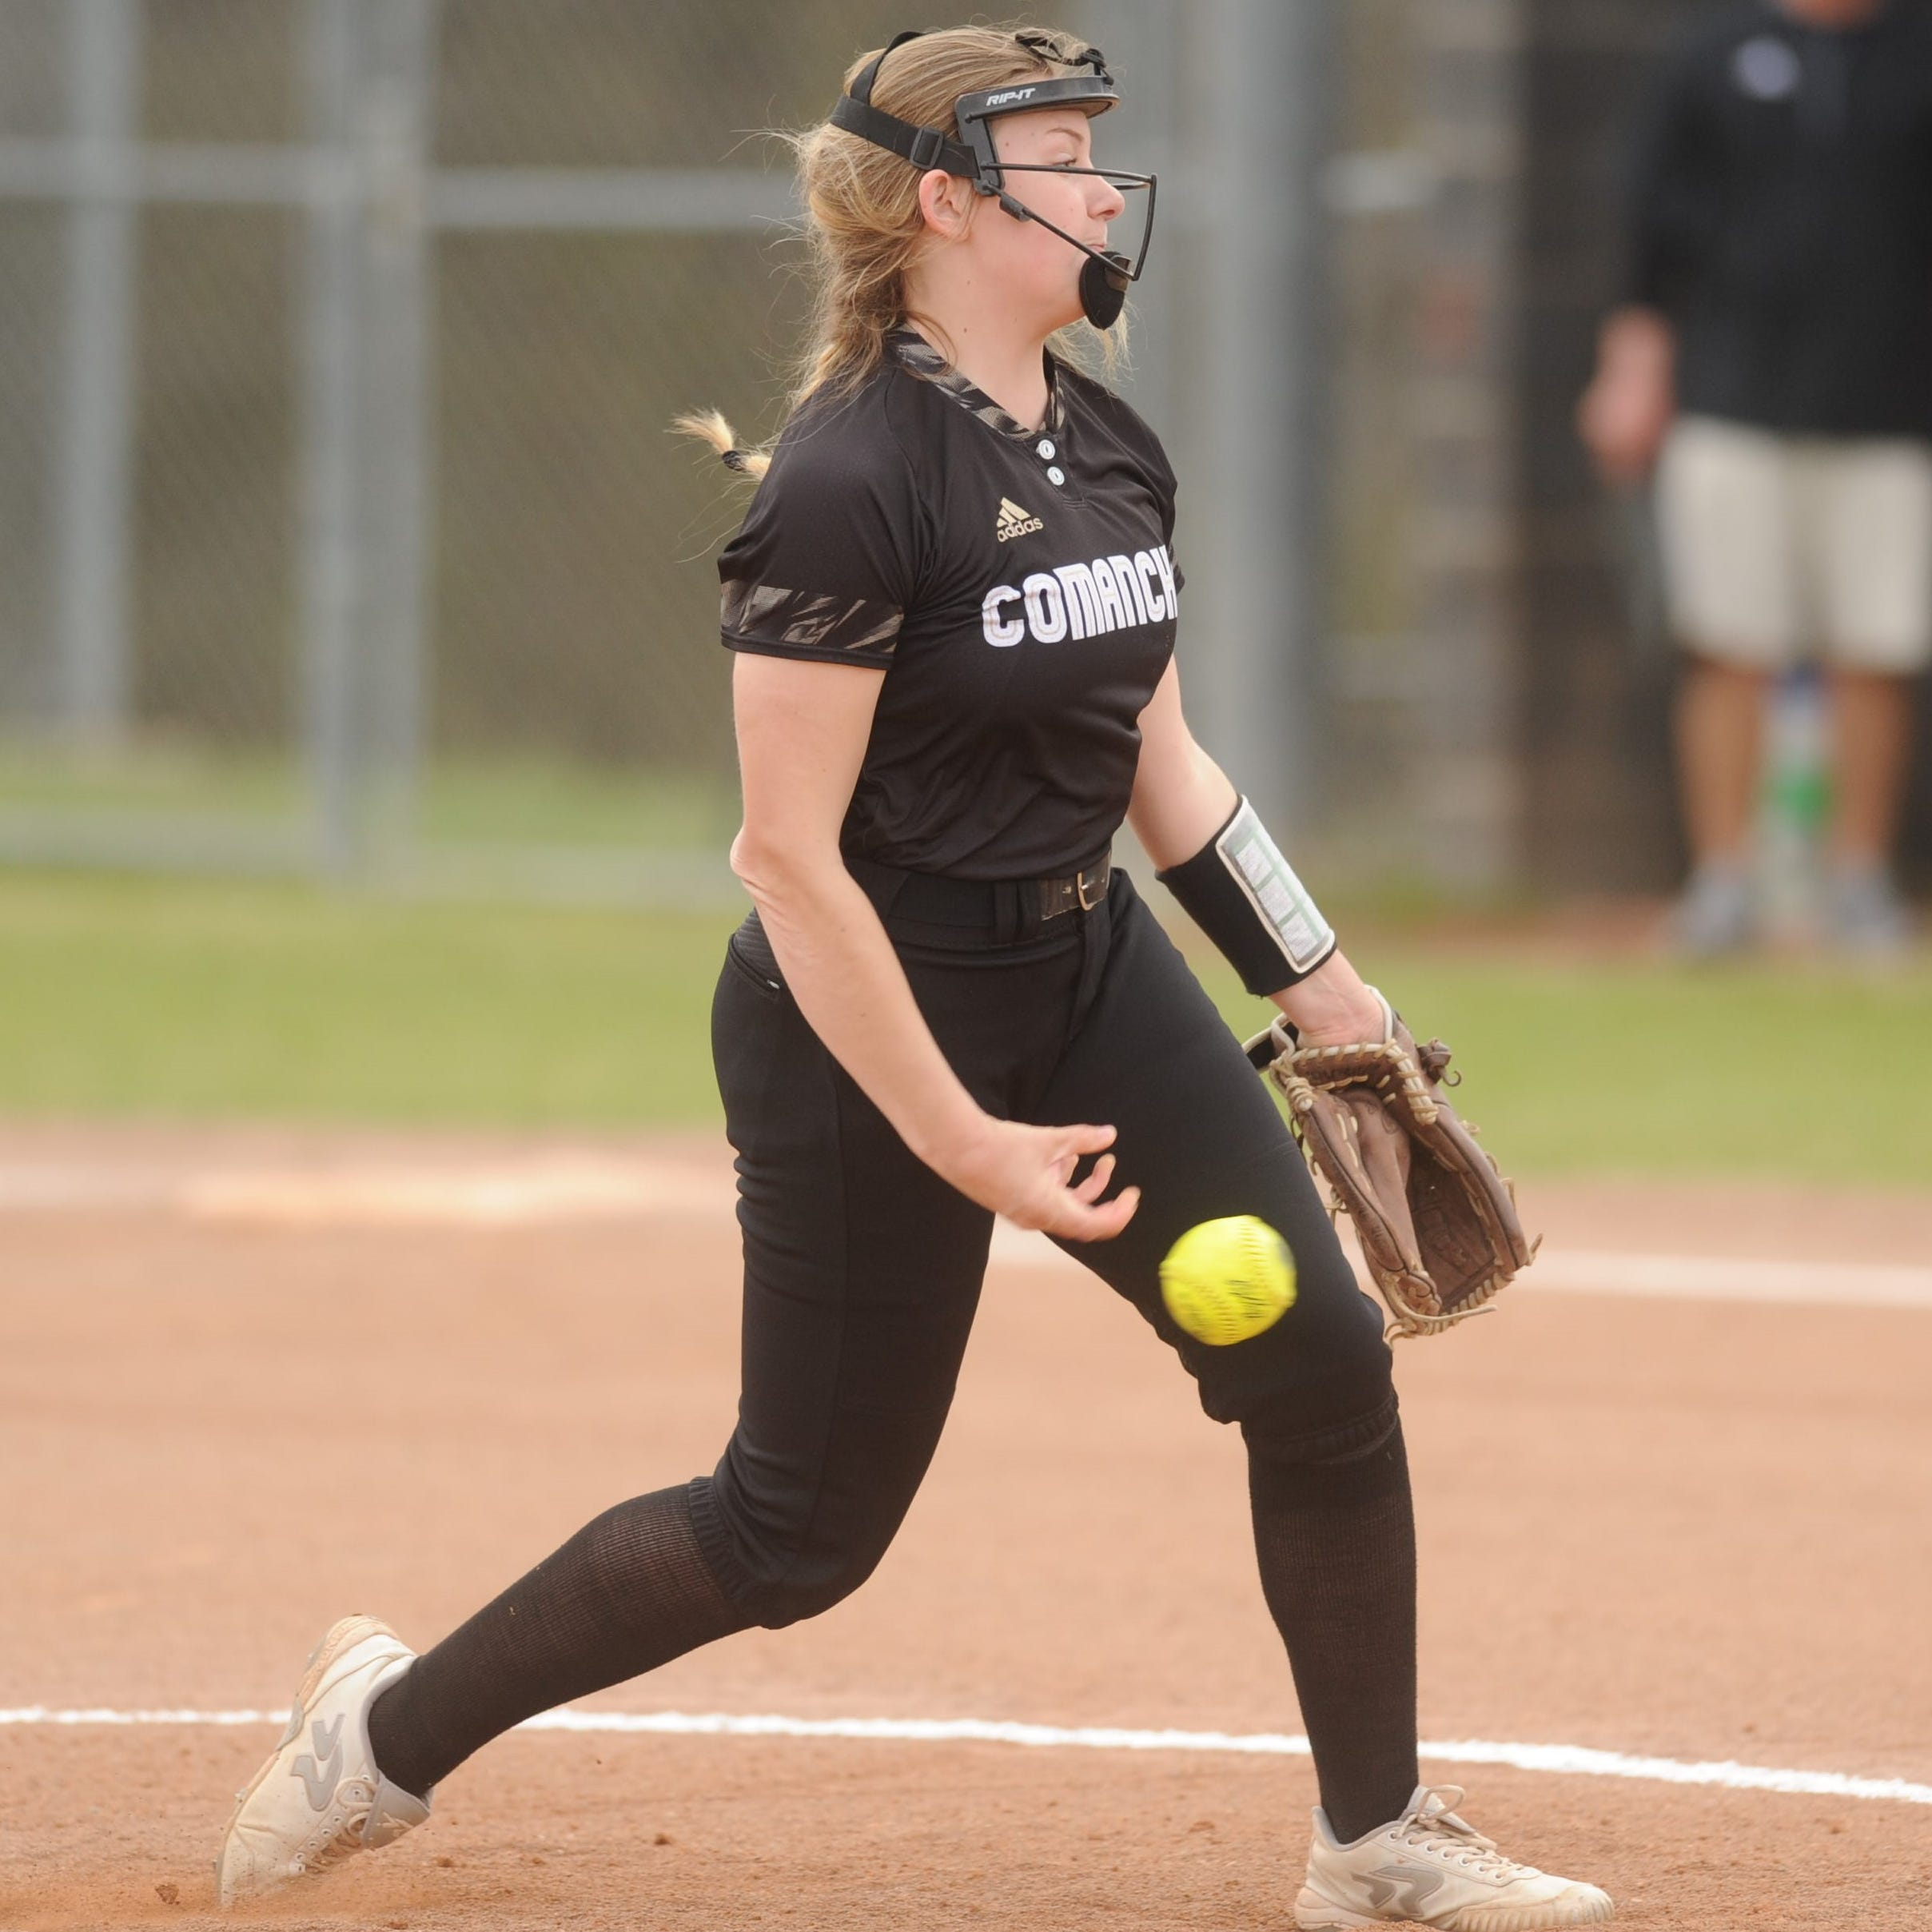 Comanche pitcher Chloe Williams shines in key District 6-3A softball win over Eastland